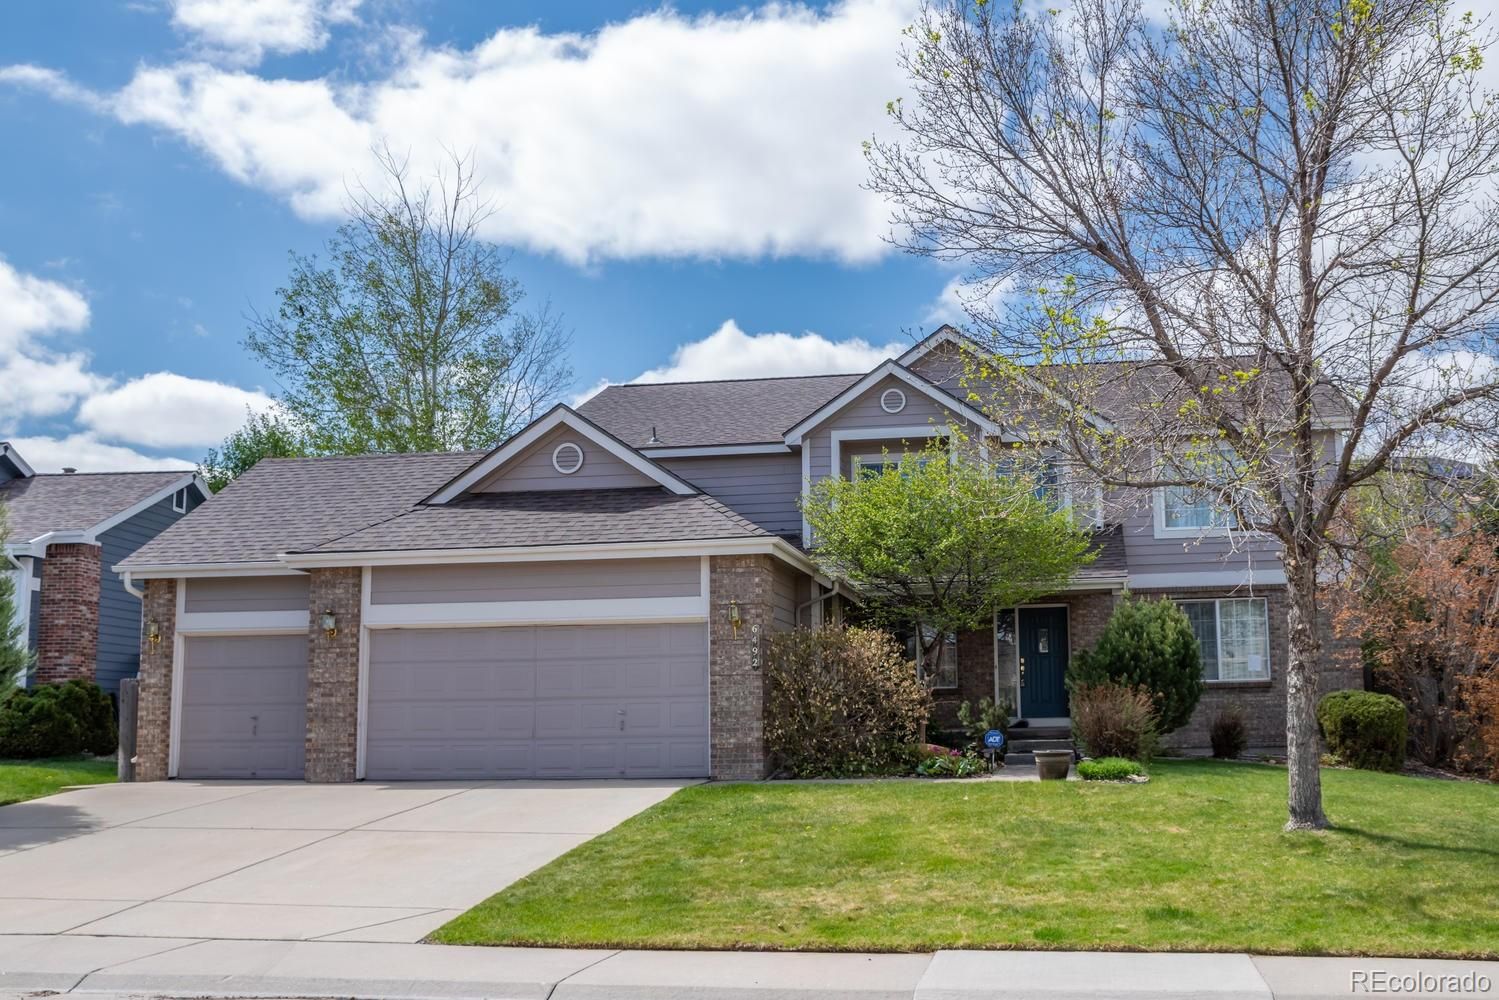 6492 W 99th Avenue, Westminster, CO 80021 - Westminster, CO real estate listing